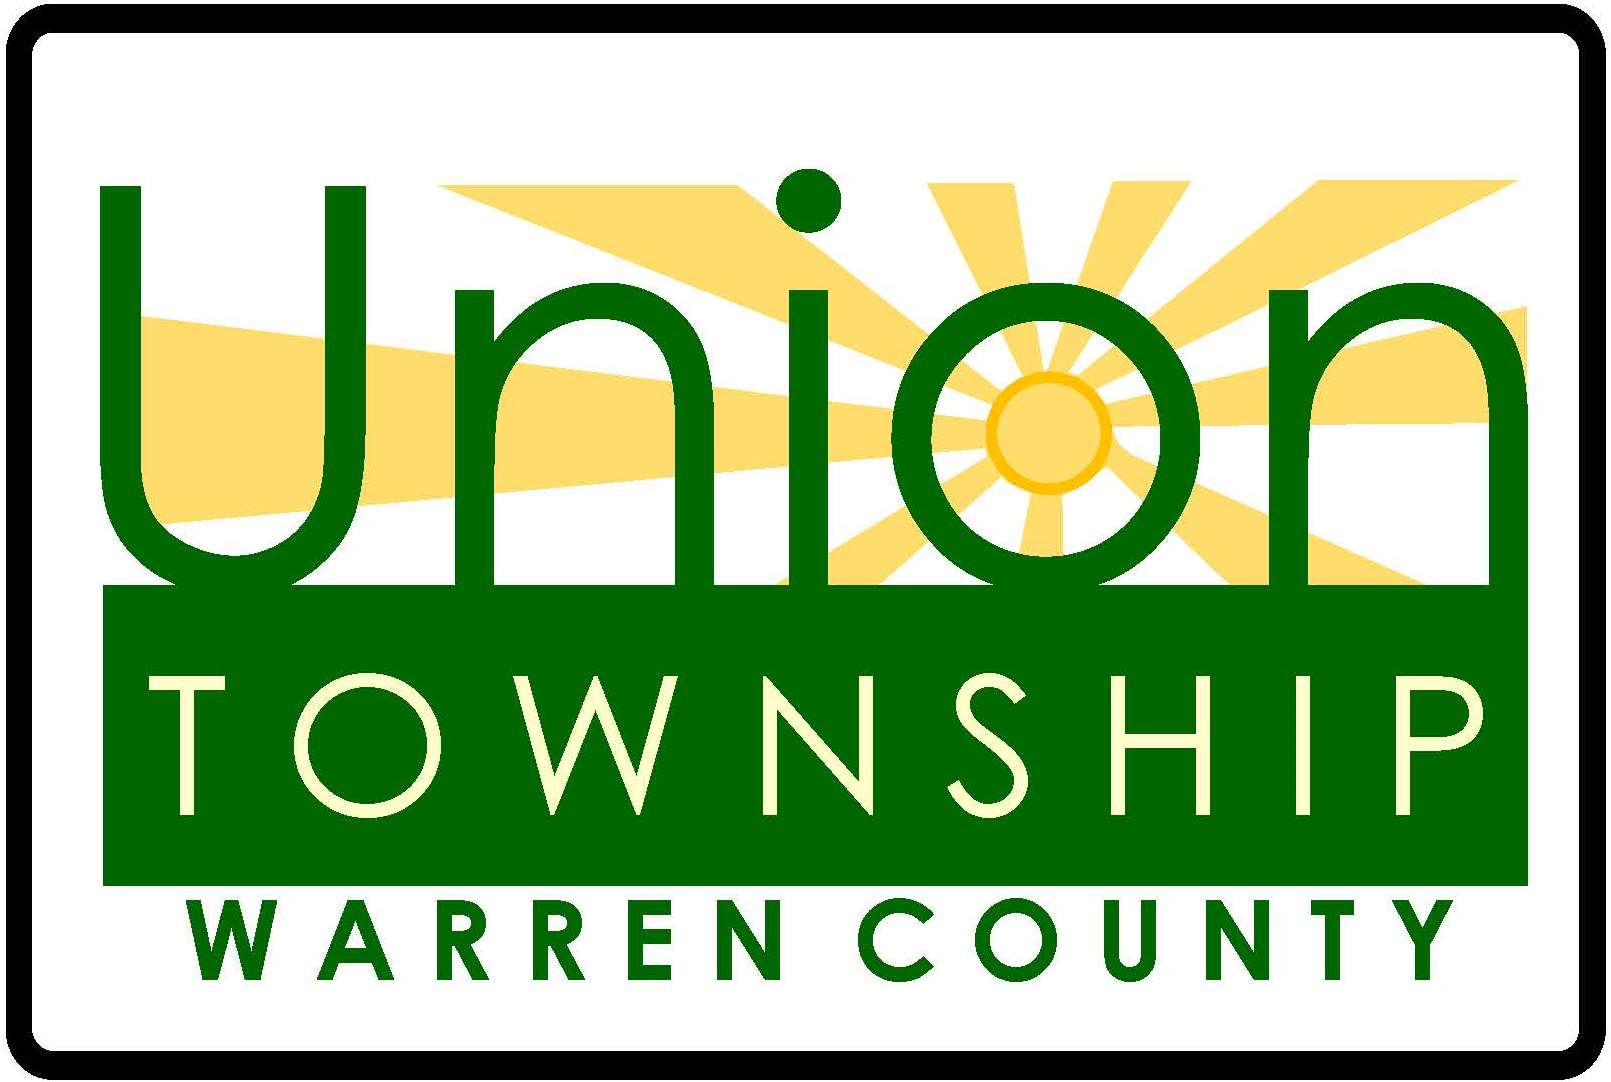 Union Township, Warren County, Ohio header image